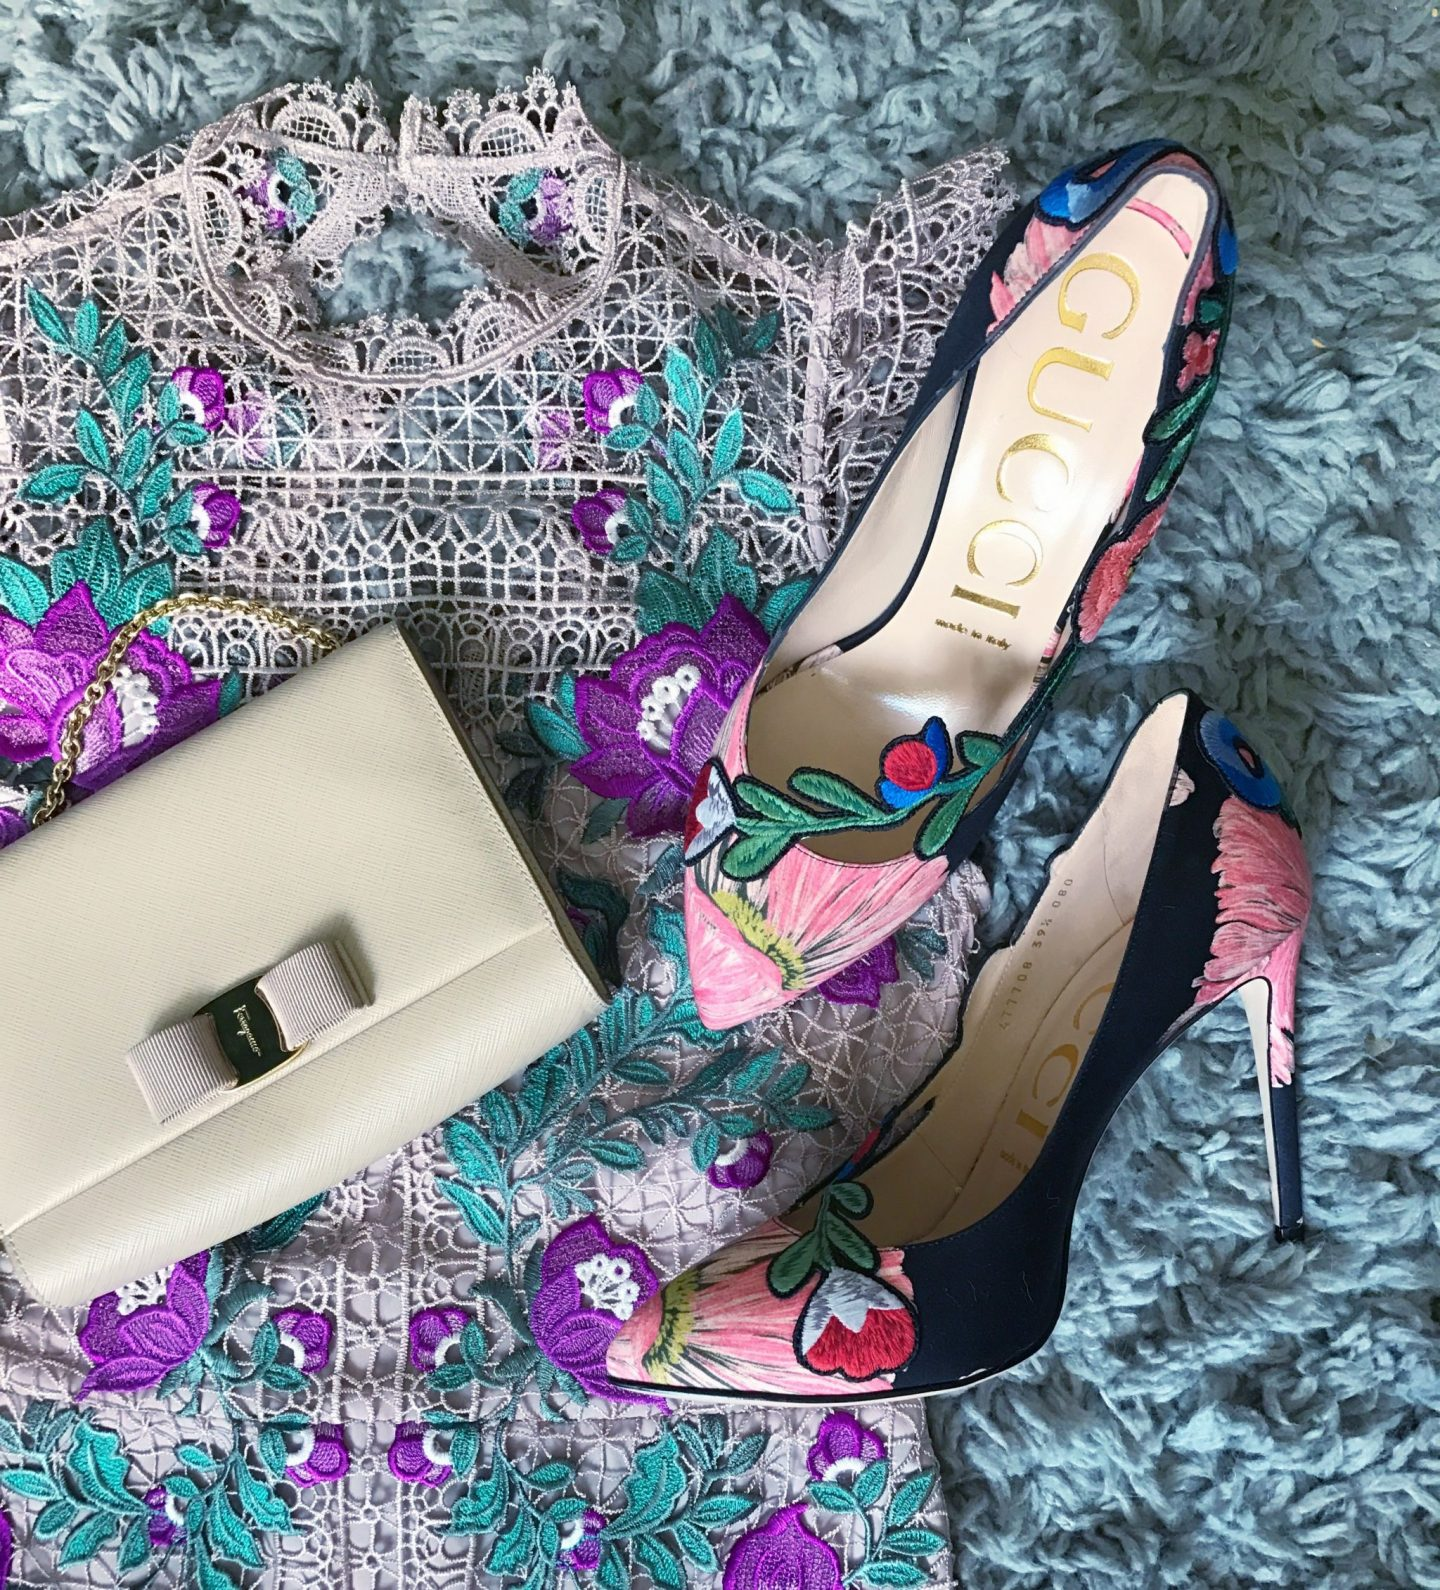 Gucci Sale New Collection Floral Pumps Karen Millen Floral Dress Salvatore Ferragamo Miss Vara